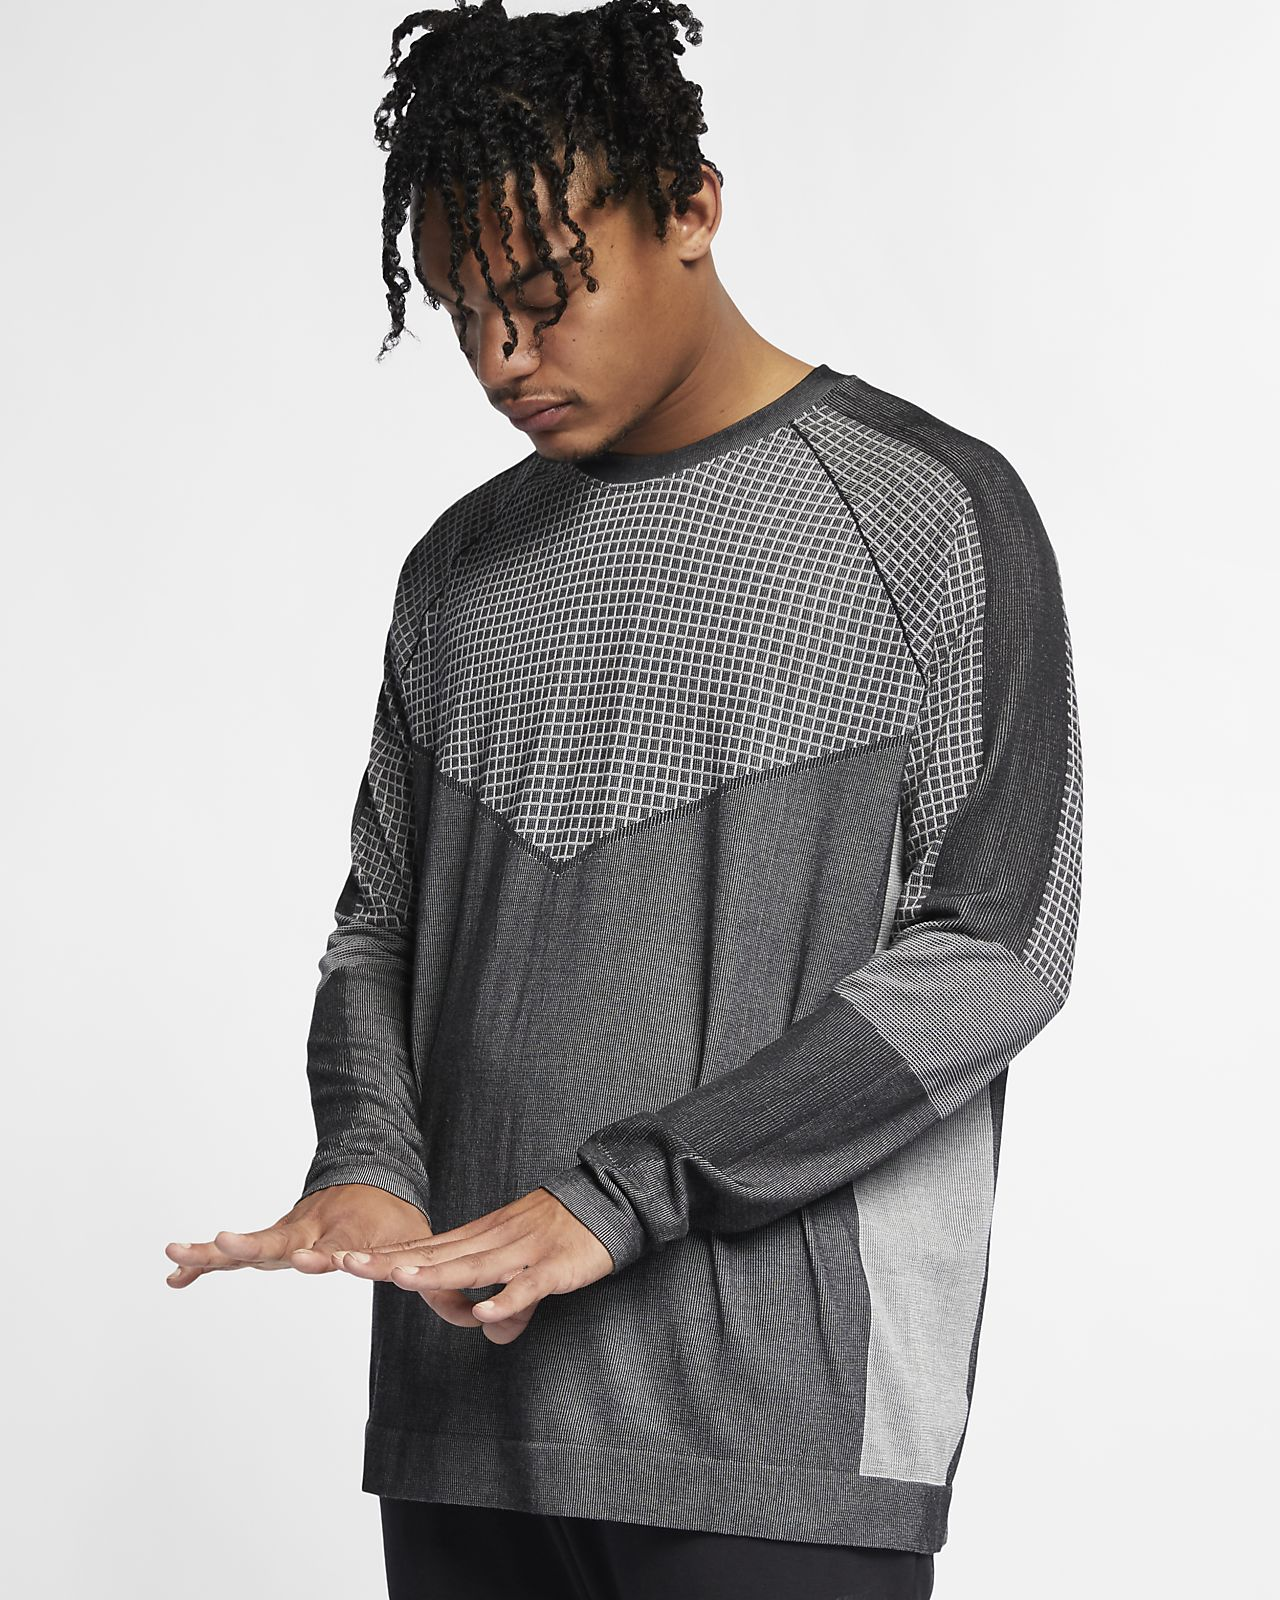 5290579b3aa5b9 Nike Sportswear Tech Pack Men s Long-Sleeve Knit Top. Nike.com